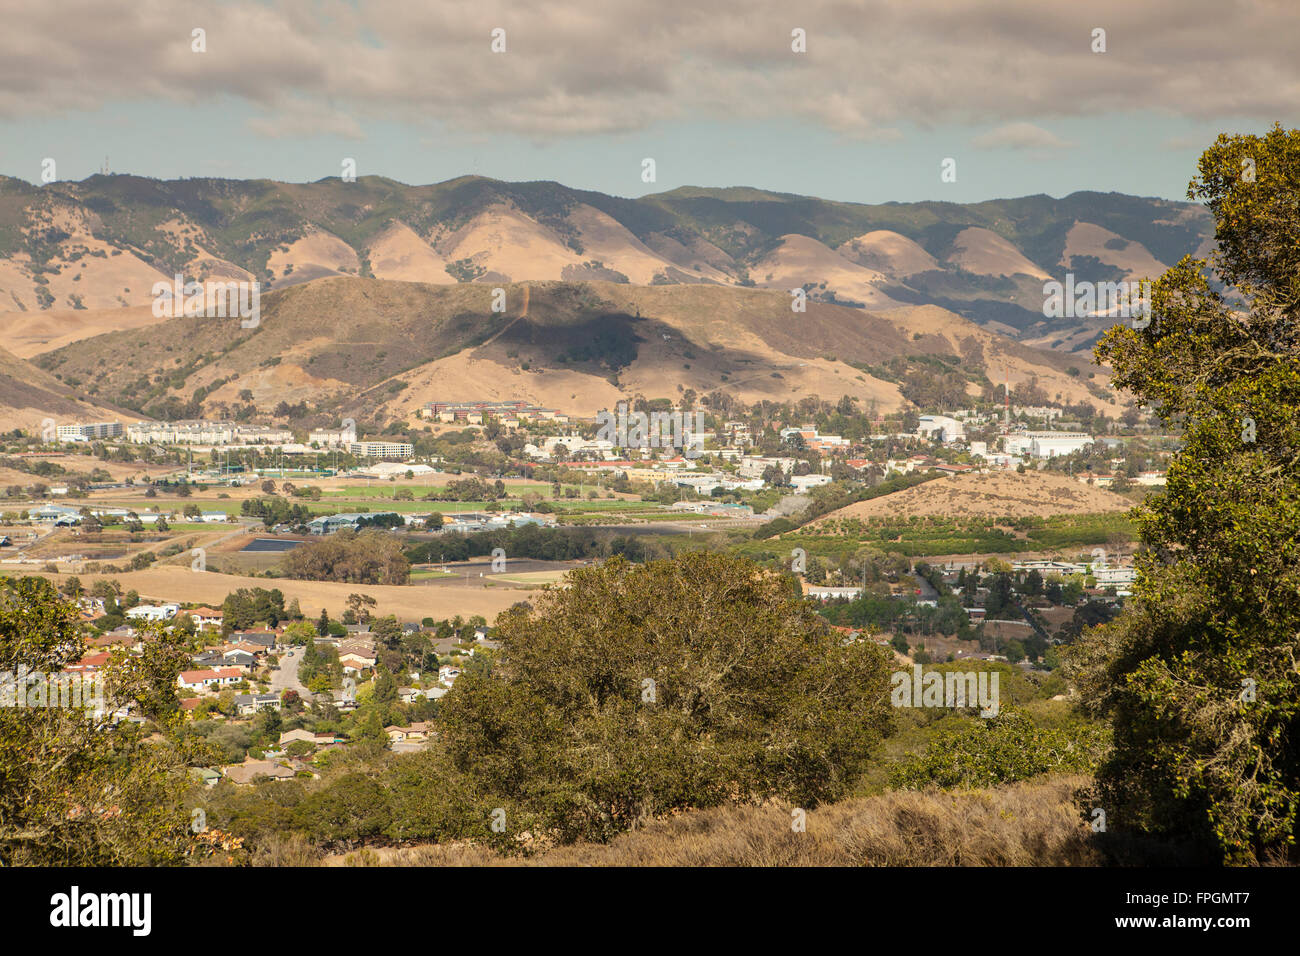 Cal Poly Stock Photos & Cal Poly Stock Images - Alamy